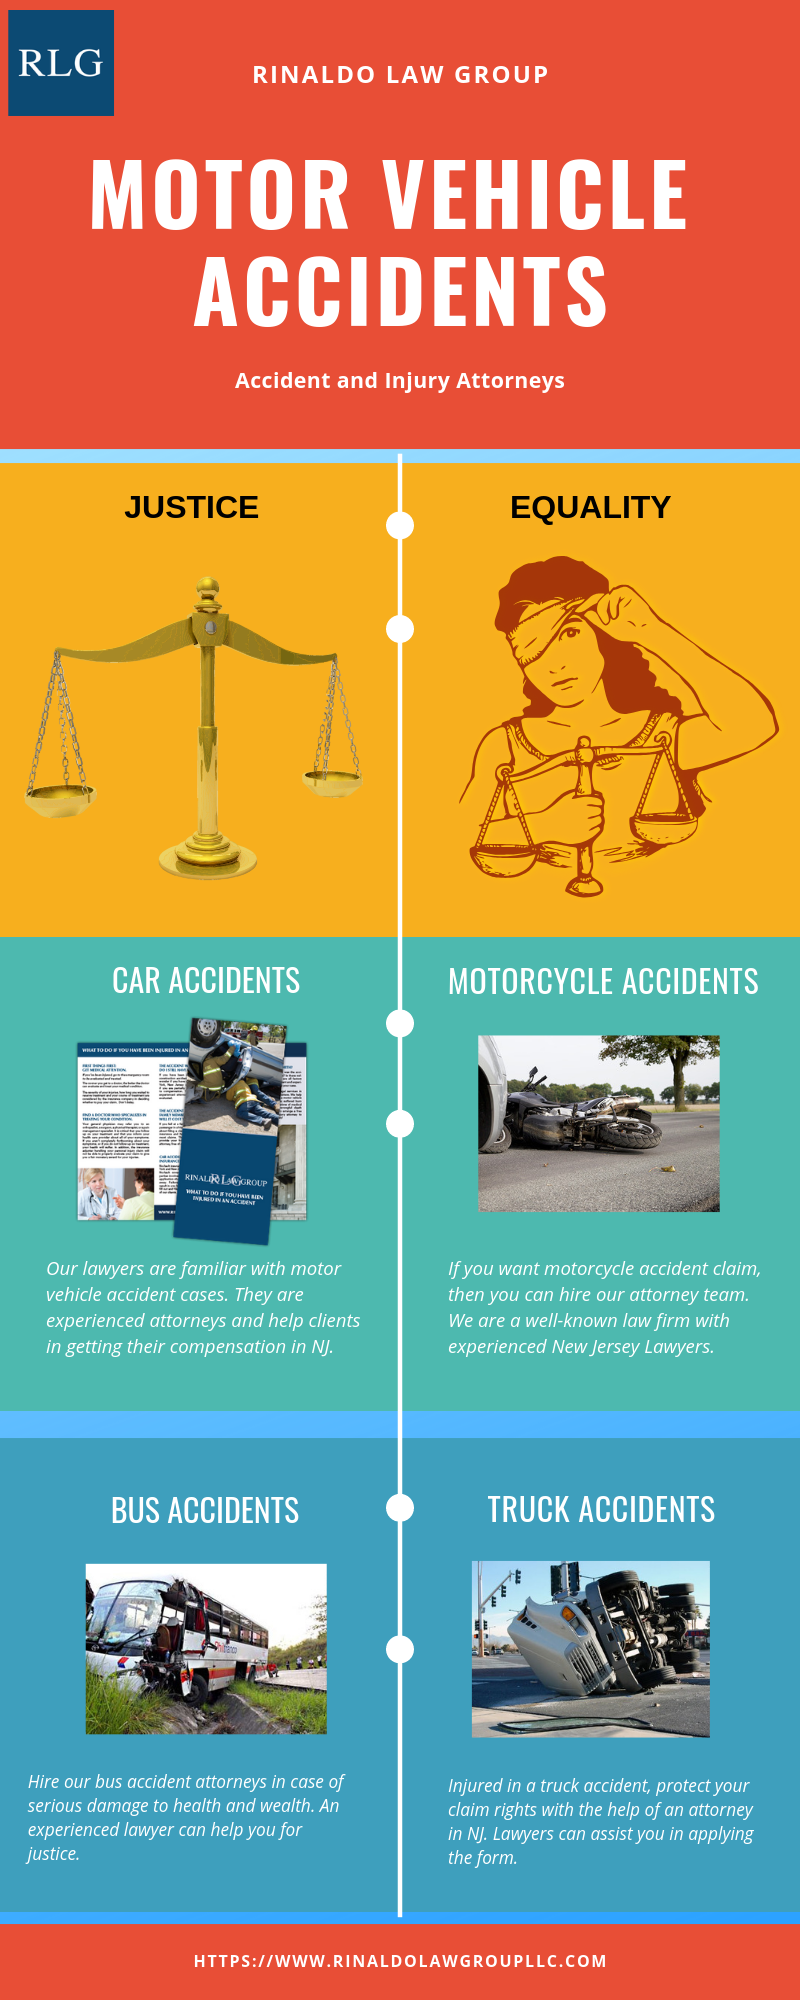 Auto Accident Attorneys New Jersey Car Accident Lawyer Accident